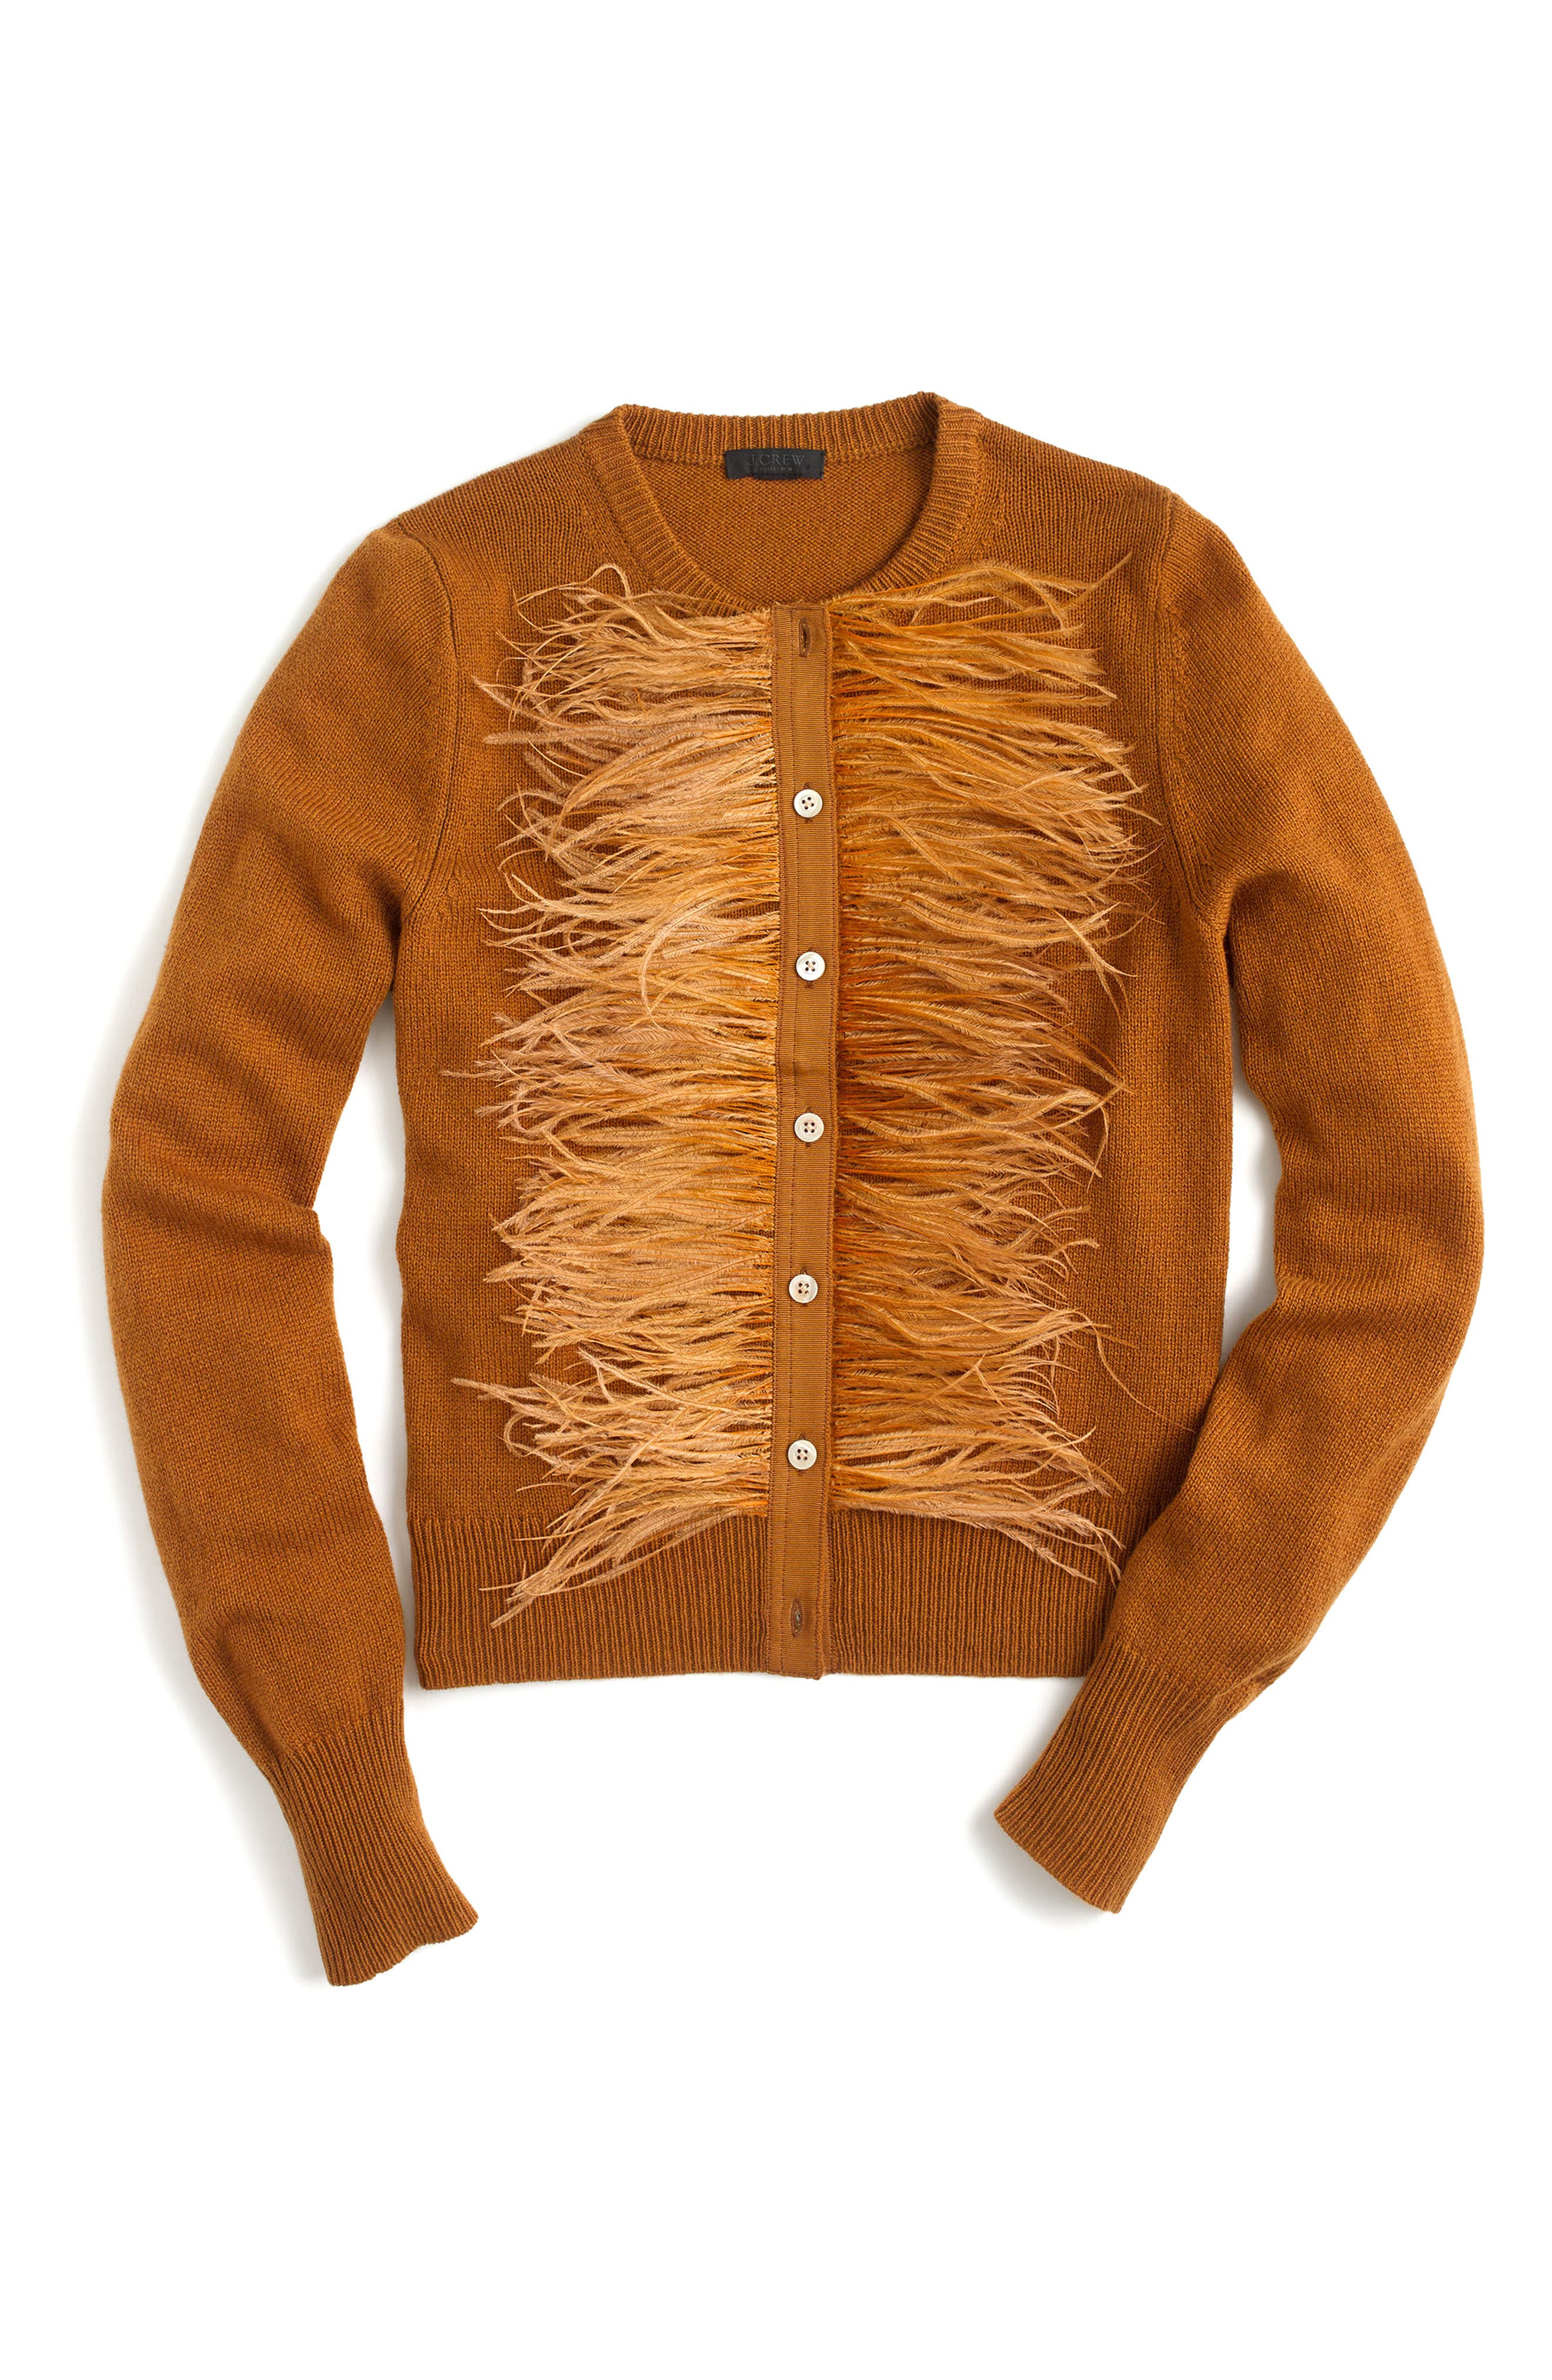 J.CREW, Faux Feather Wool Blend Cardigan, Main thumbnail 1, color, 200